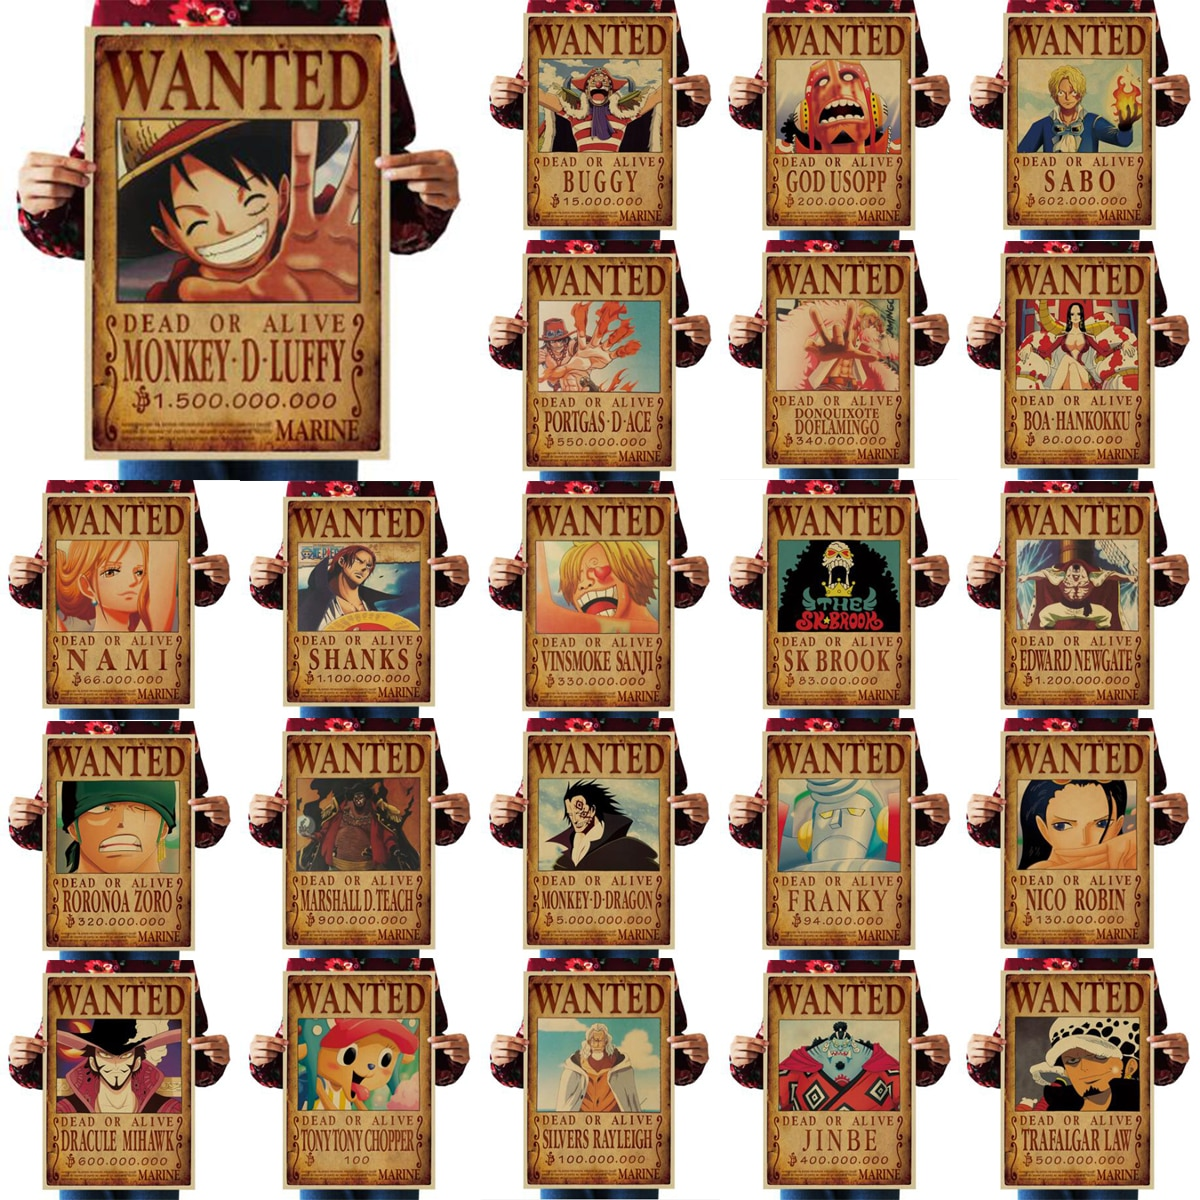 A set of 23 One Piece posters 51.5x36cm Home Decor Wall Stickers Vintage Paper One Piece posters Anime posters Luffy Wanted